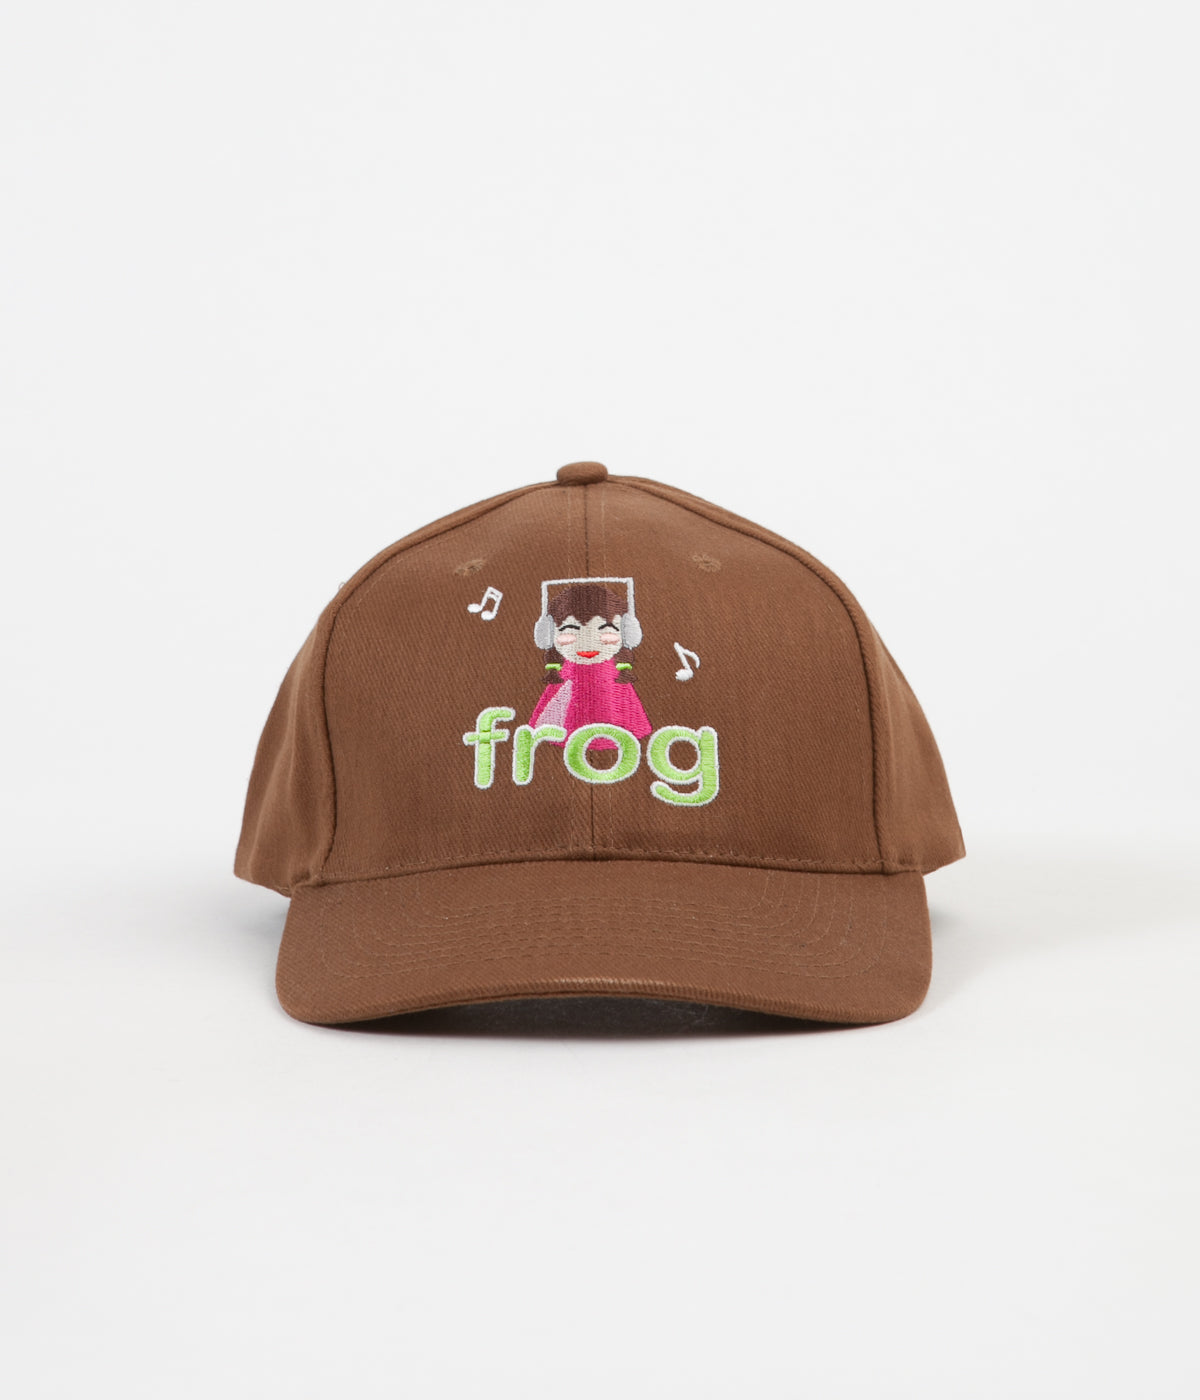 Frog Skateboards Sounds Good To Me Cap - Brown